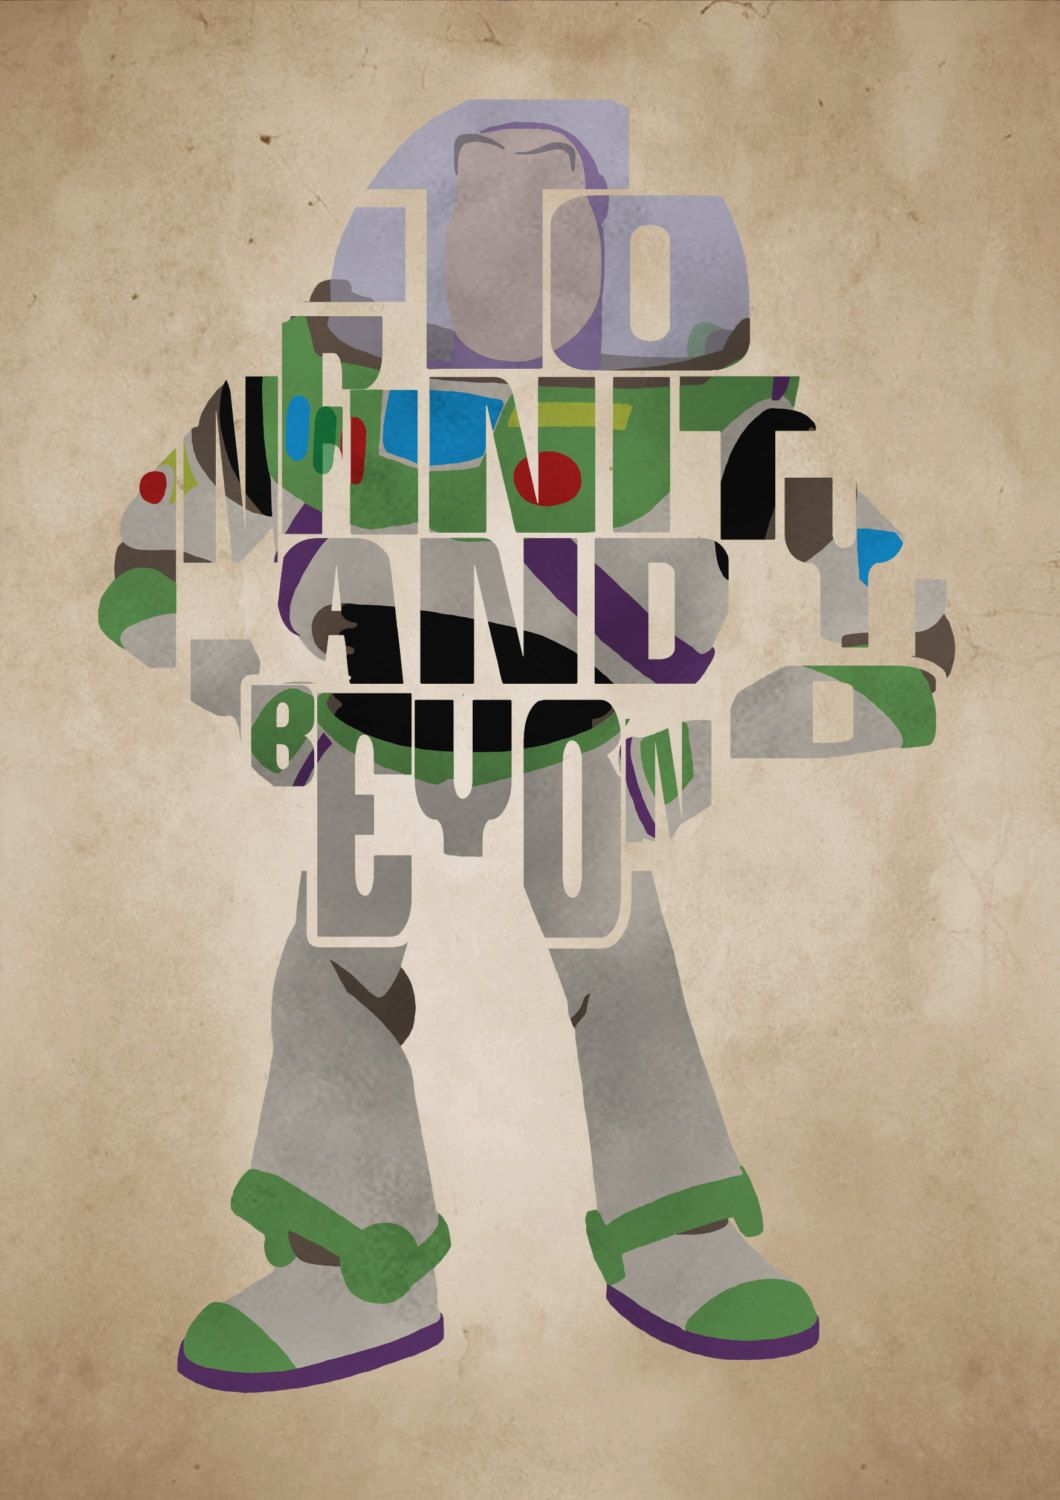 Wallpaper iphone toy story - Buzz Lightyear Toy Story Poster Minimalist